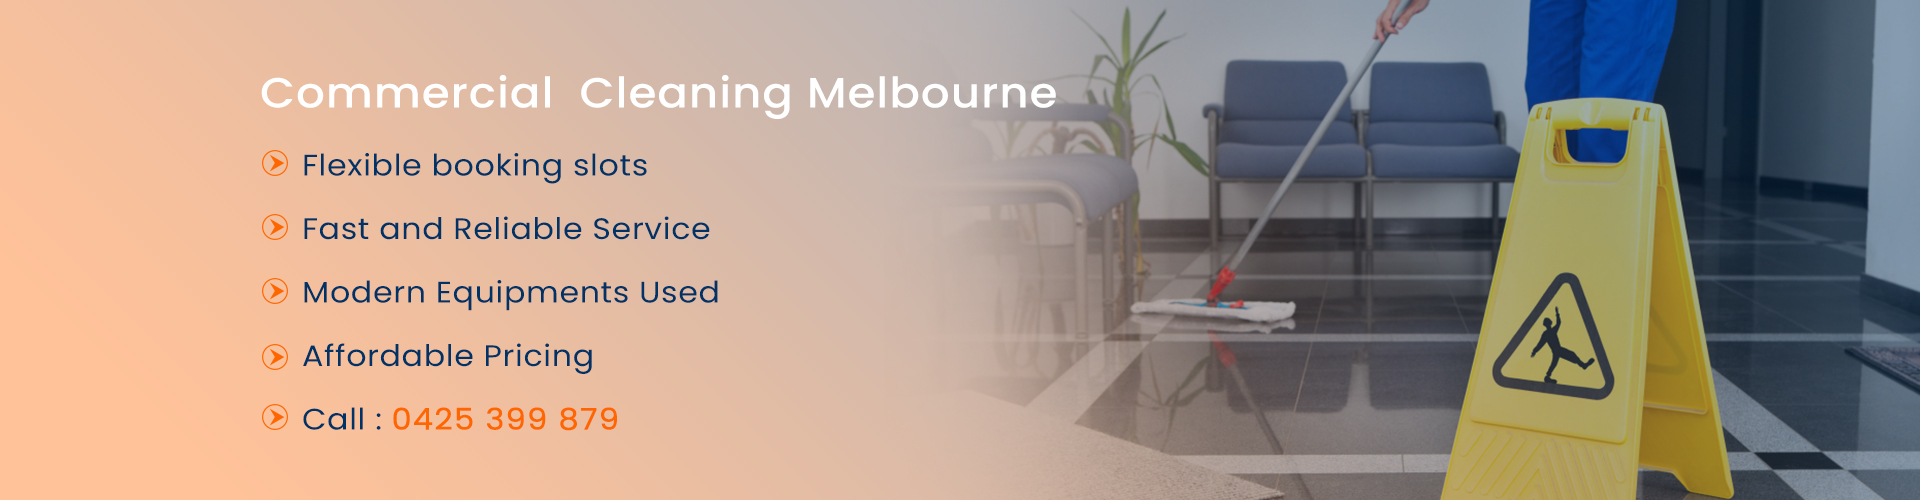 Professional Commercial Cleaning Melbourne